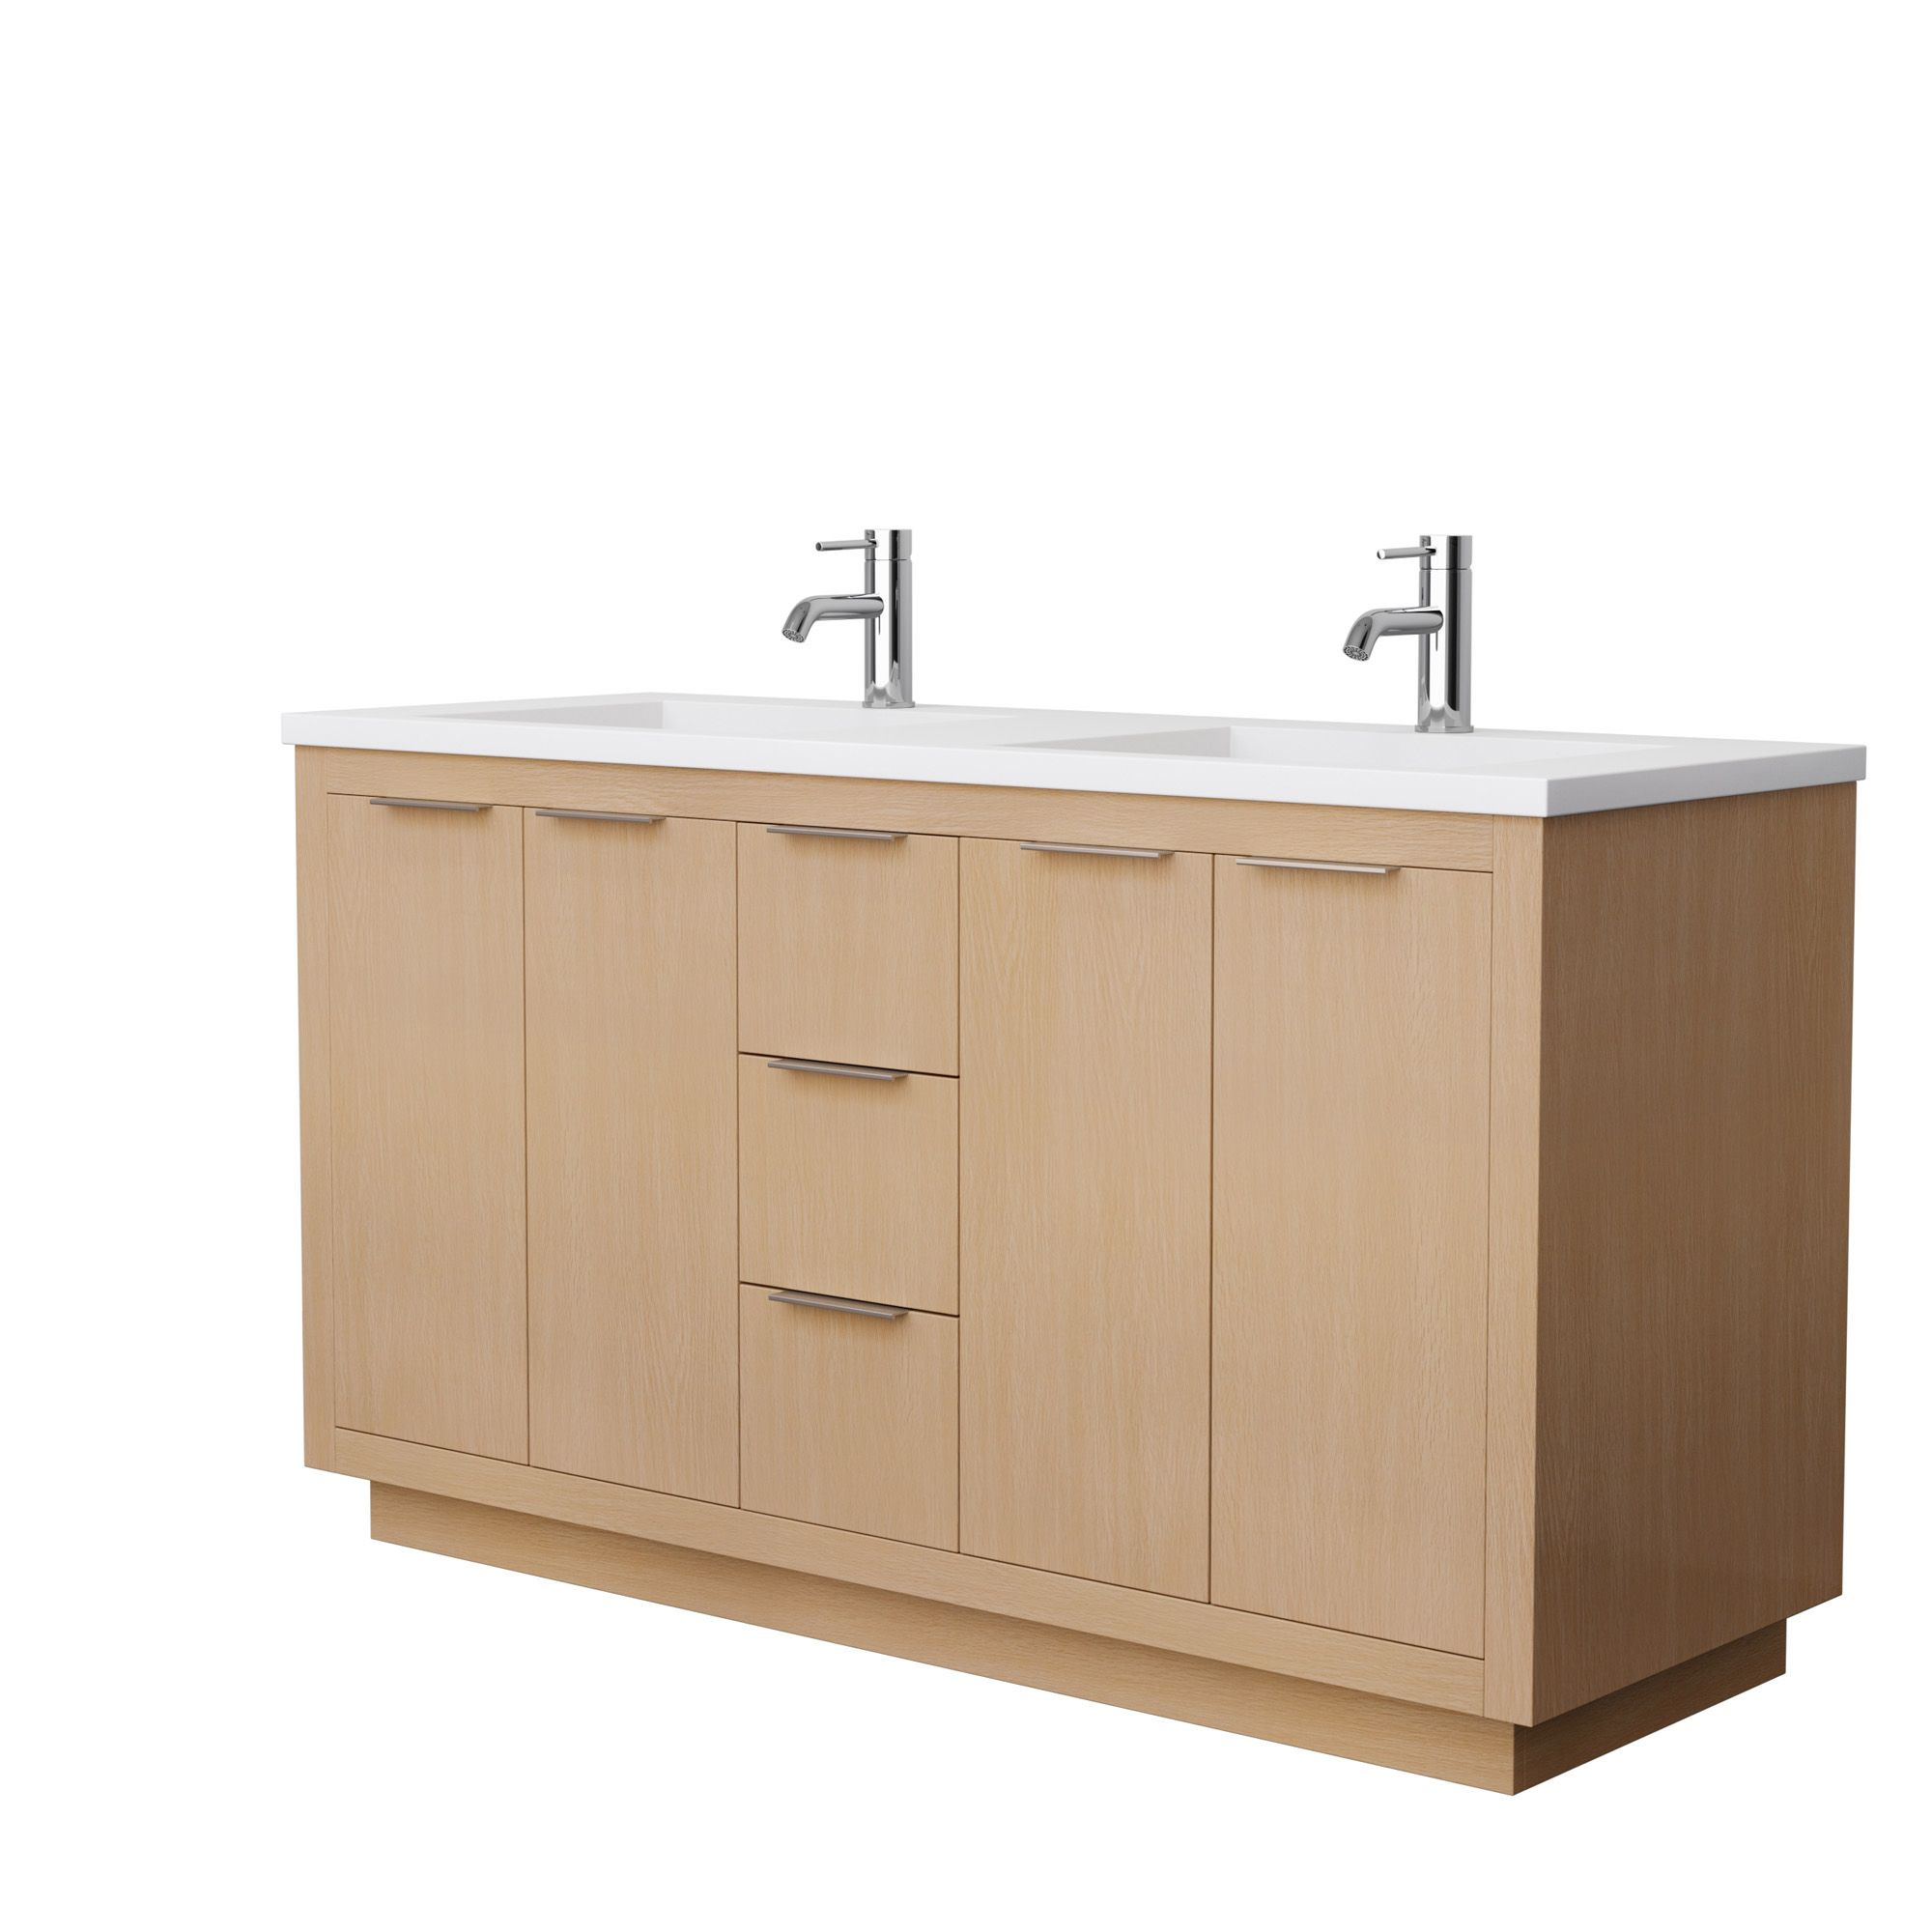 "60"" Double Bathroom Vanity in Light Straw with Countertop and Hardware Options"